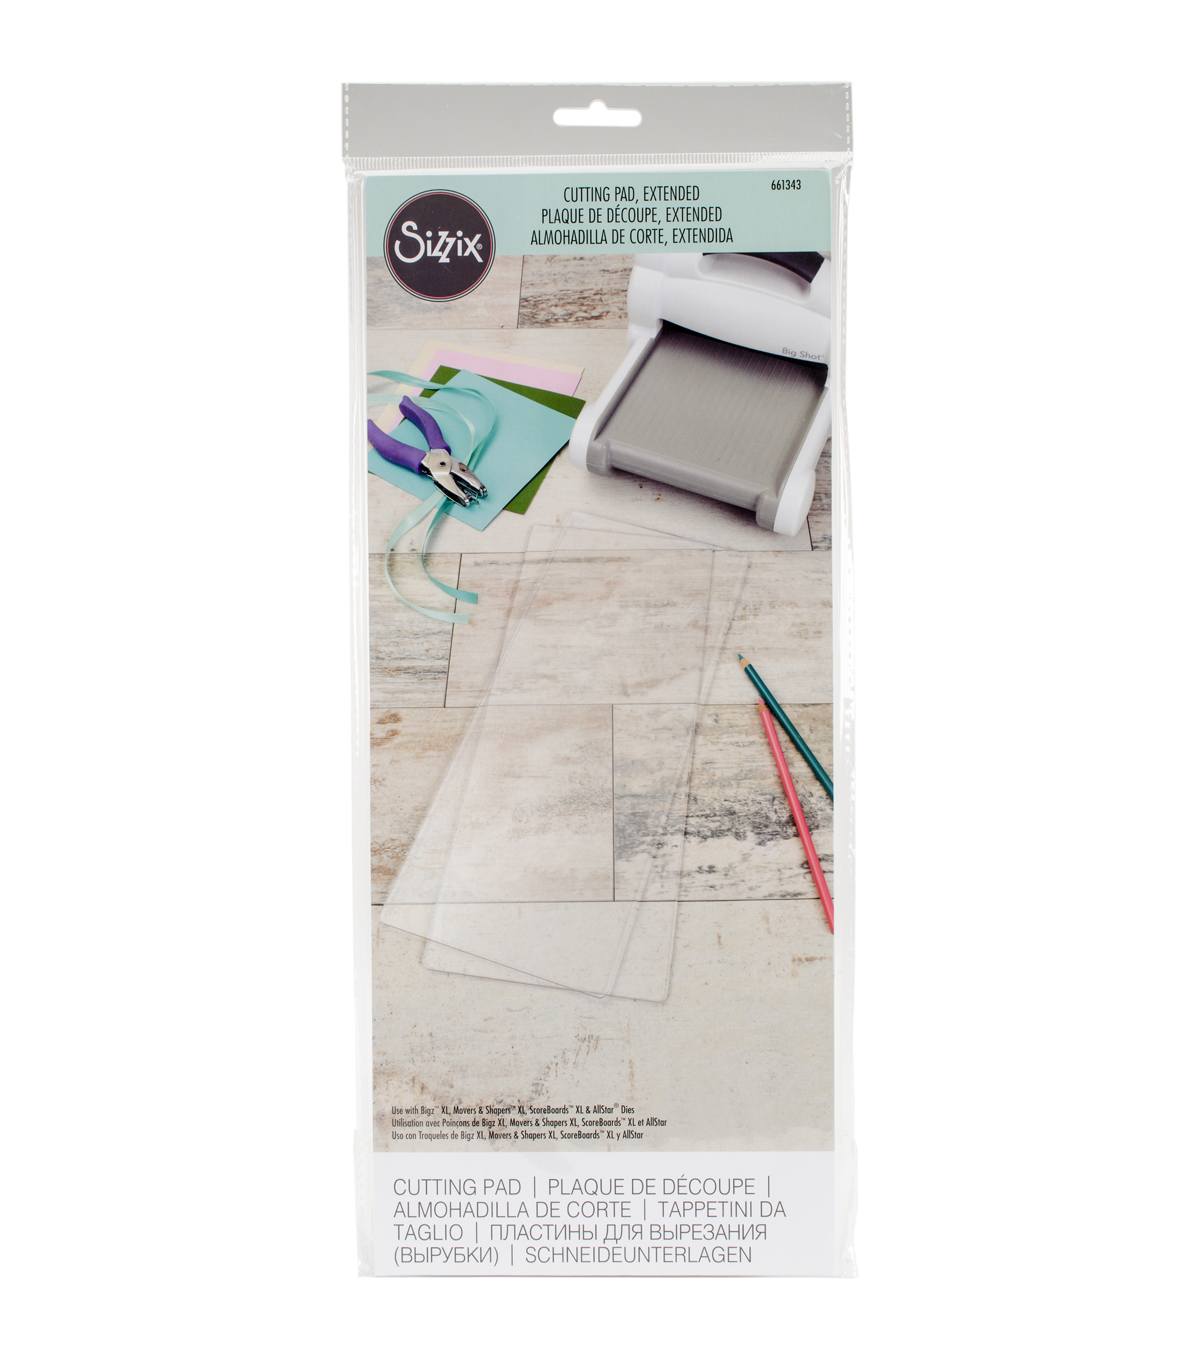 Sizzix Extended Cutting Pad